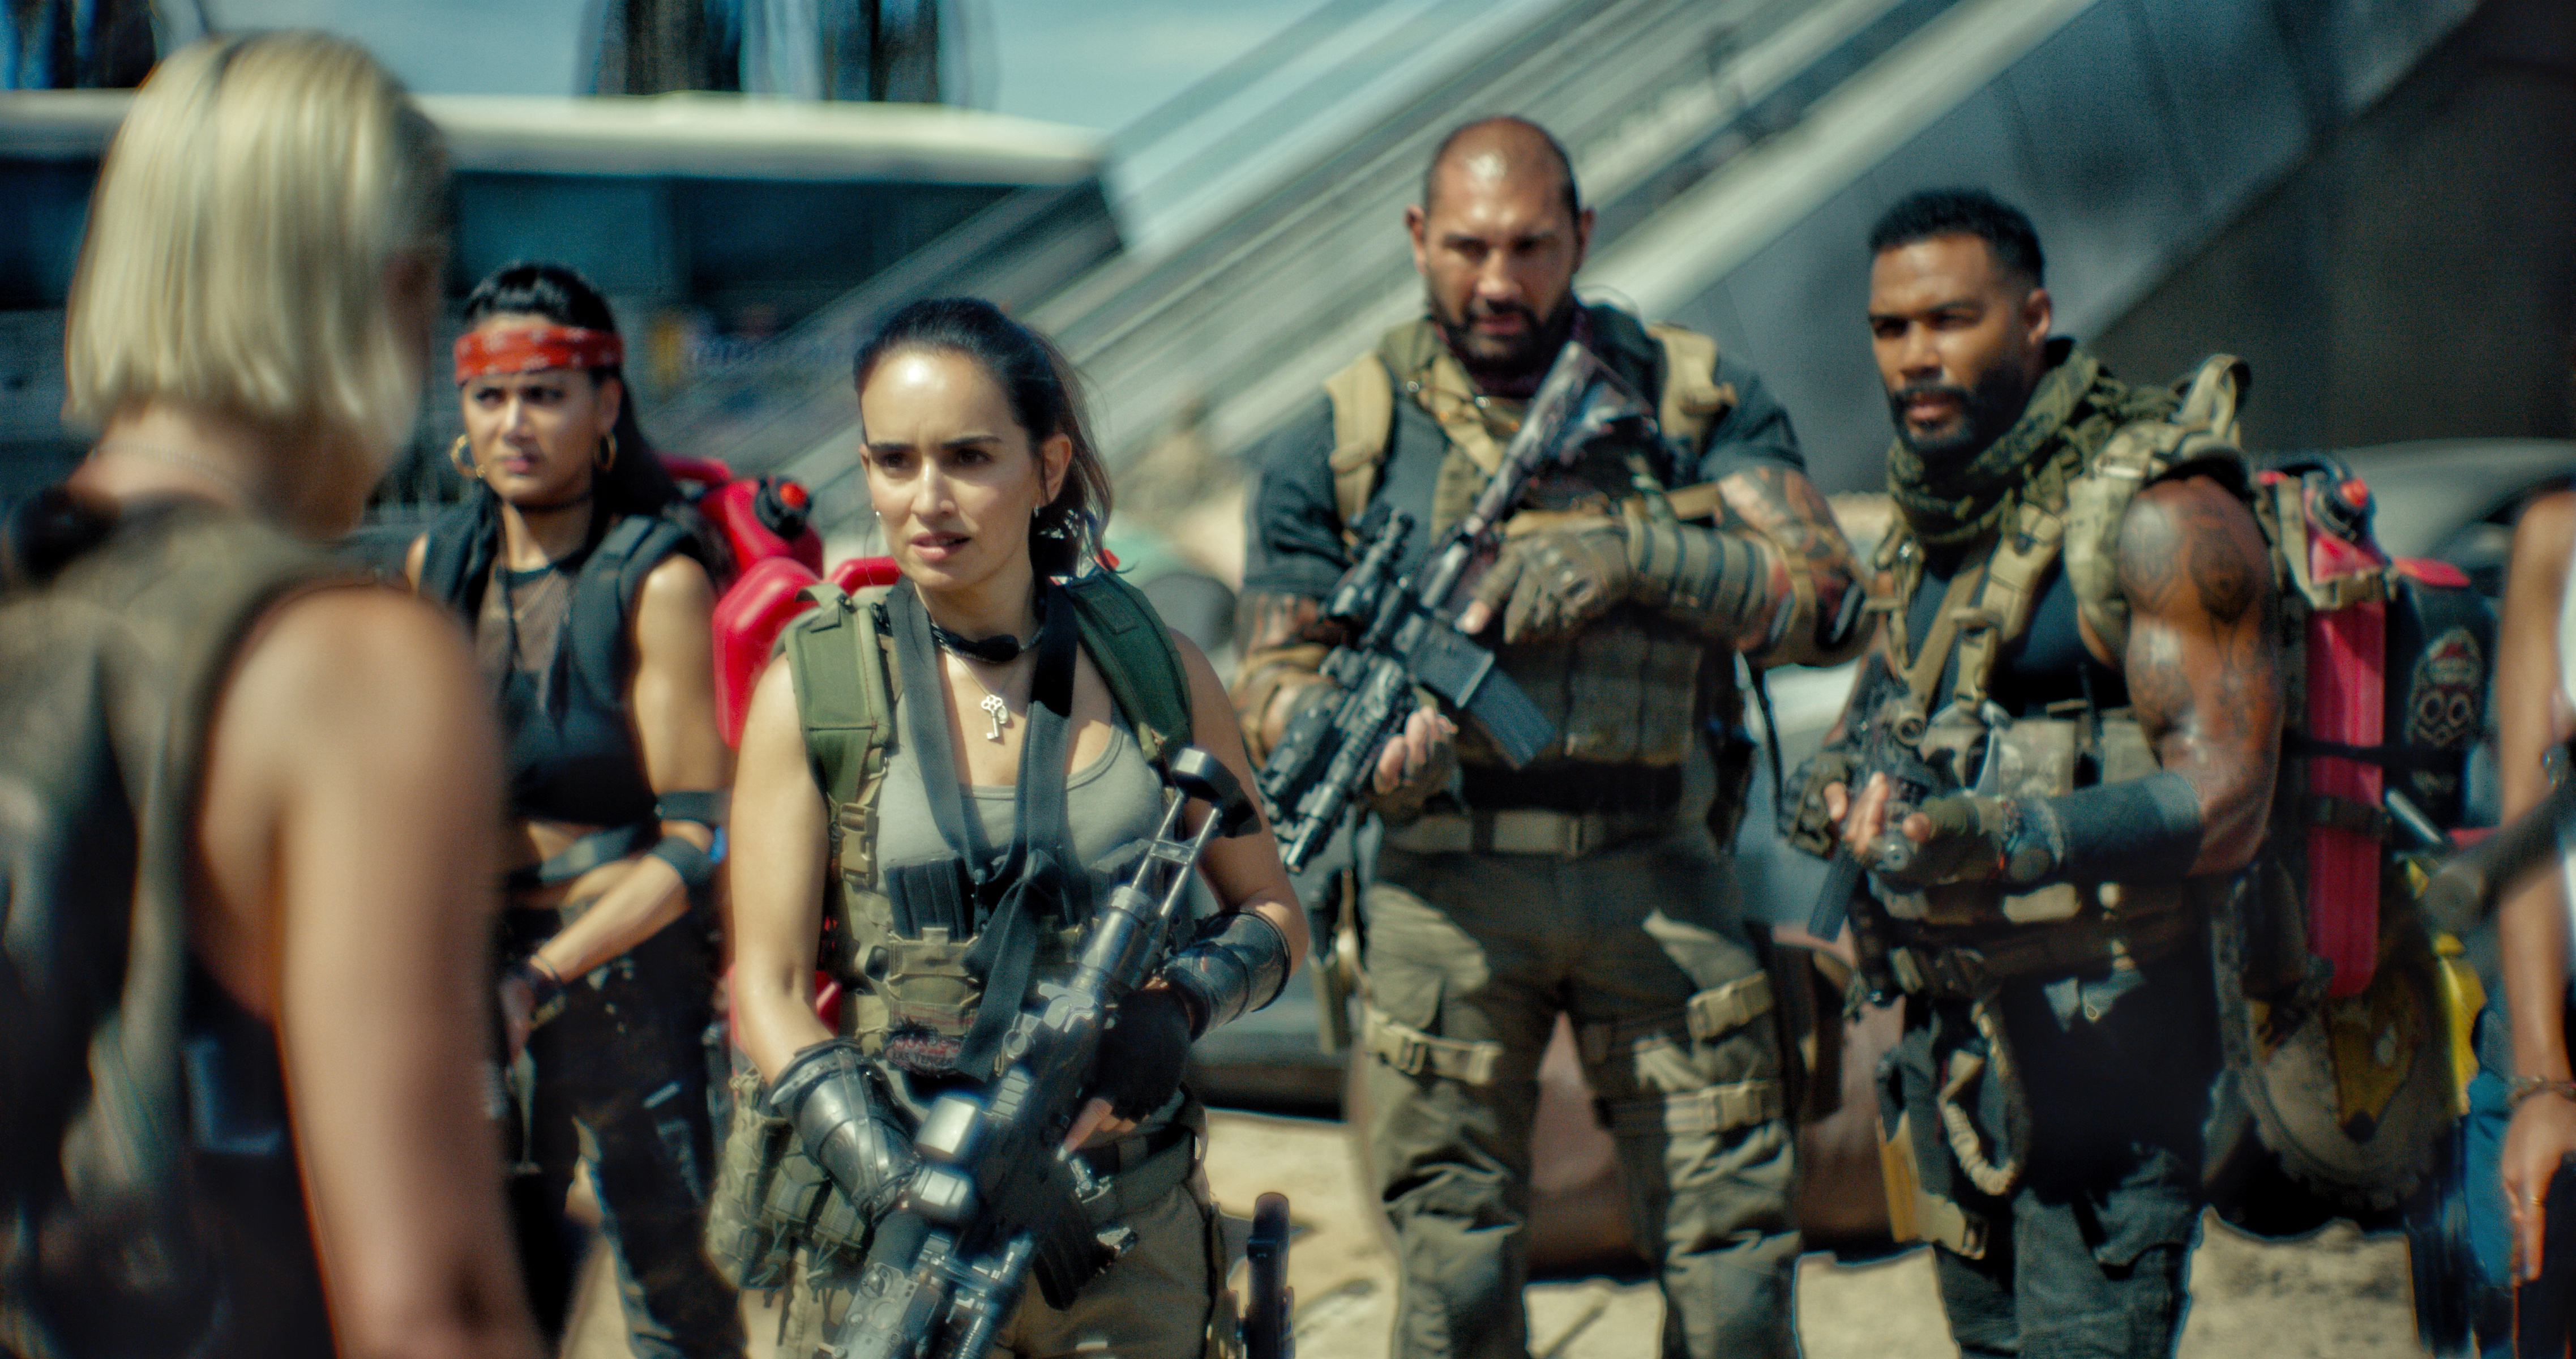 'Army of the Dead' Review: I'll Never Get Back the 2 Hours and 28 Minutes I Spent on This Movie